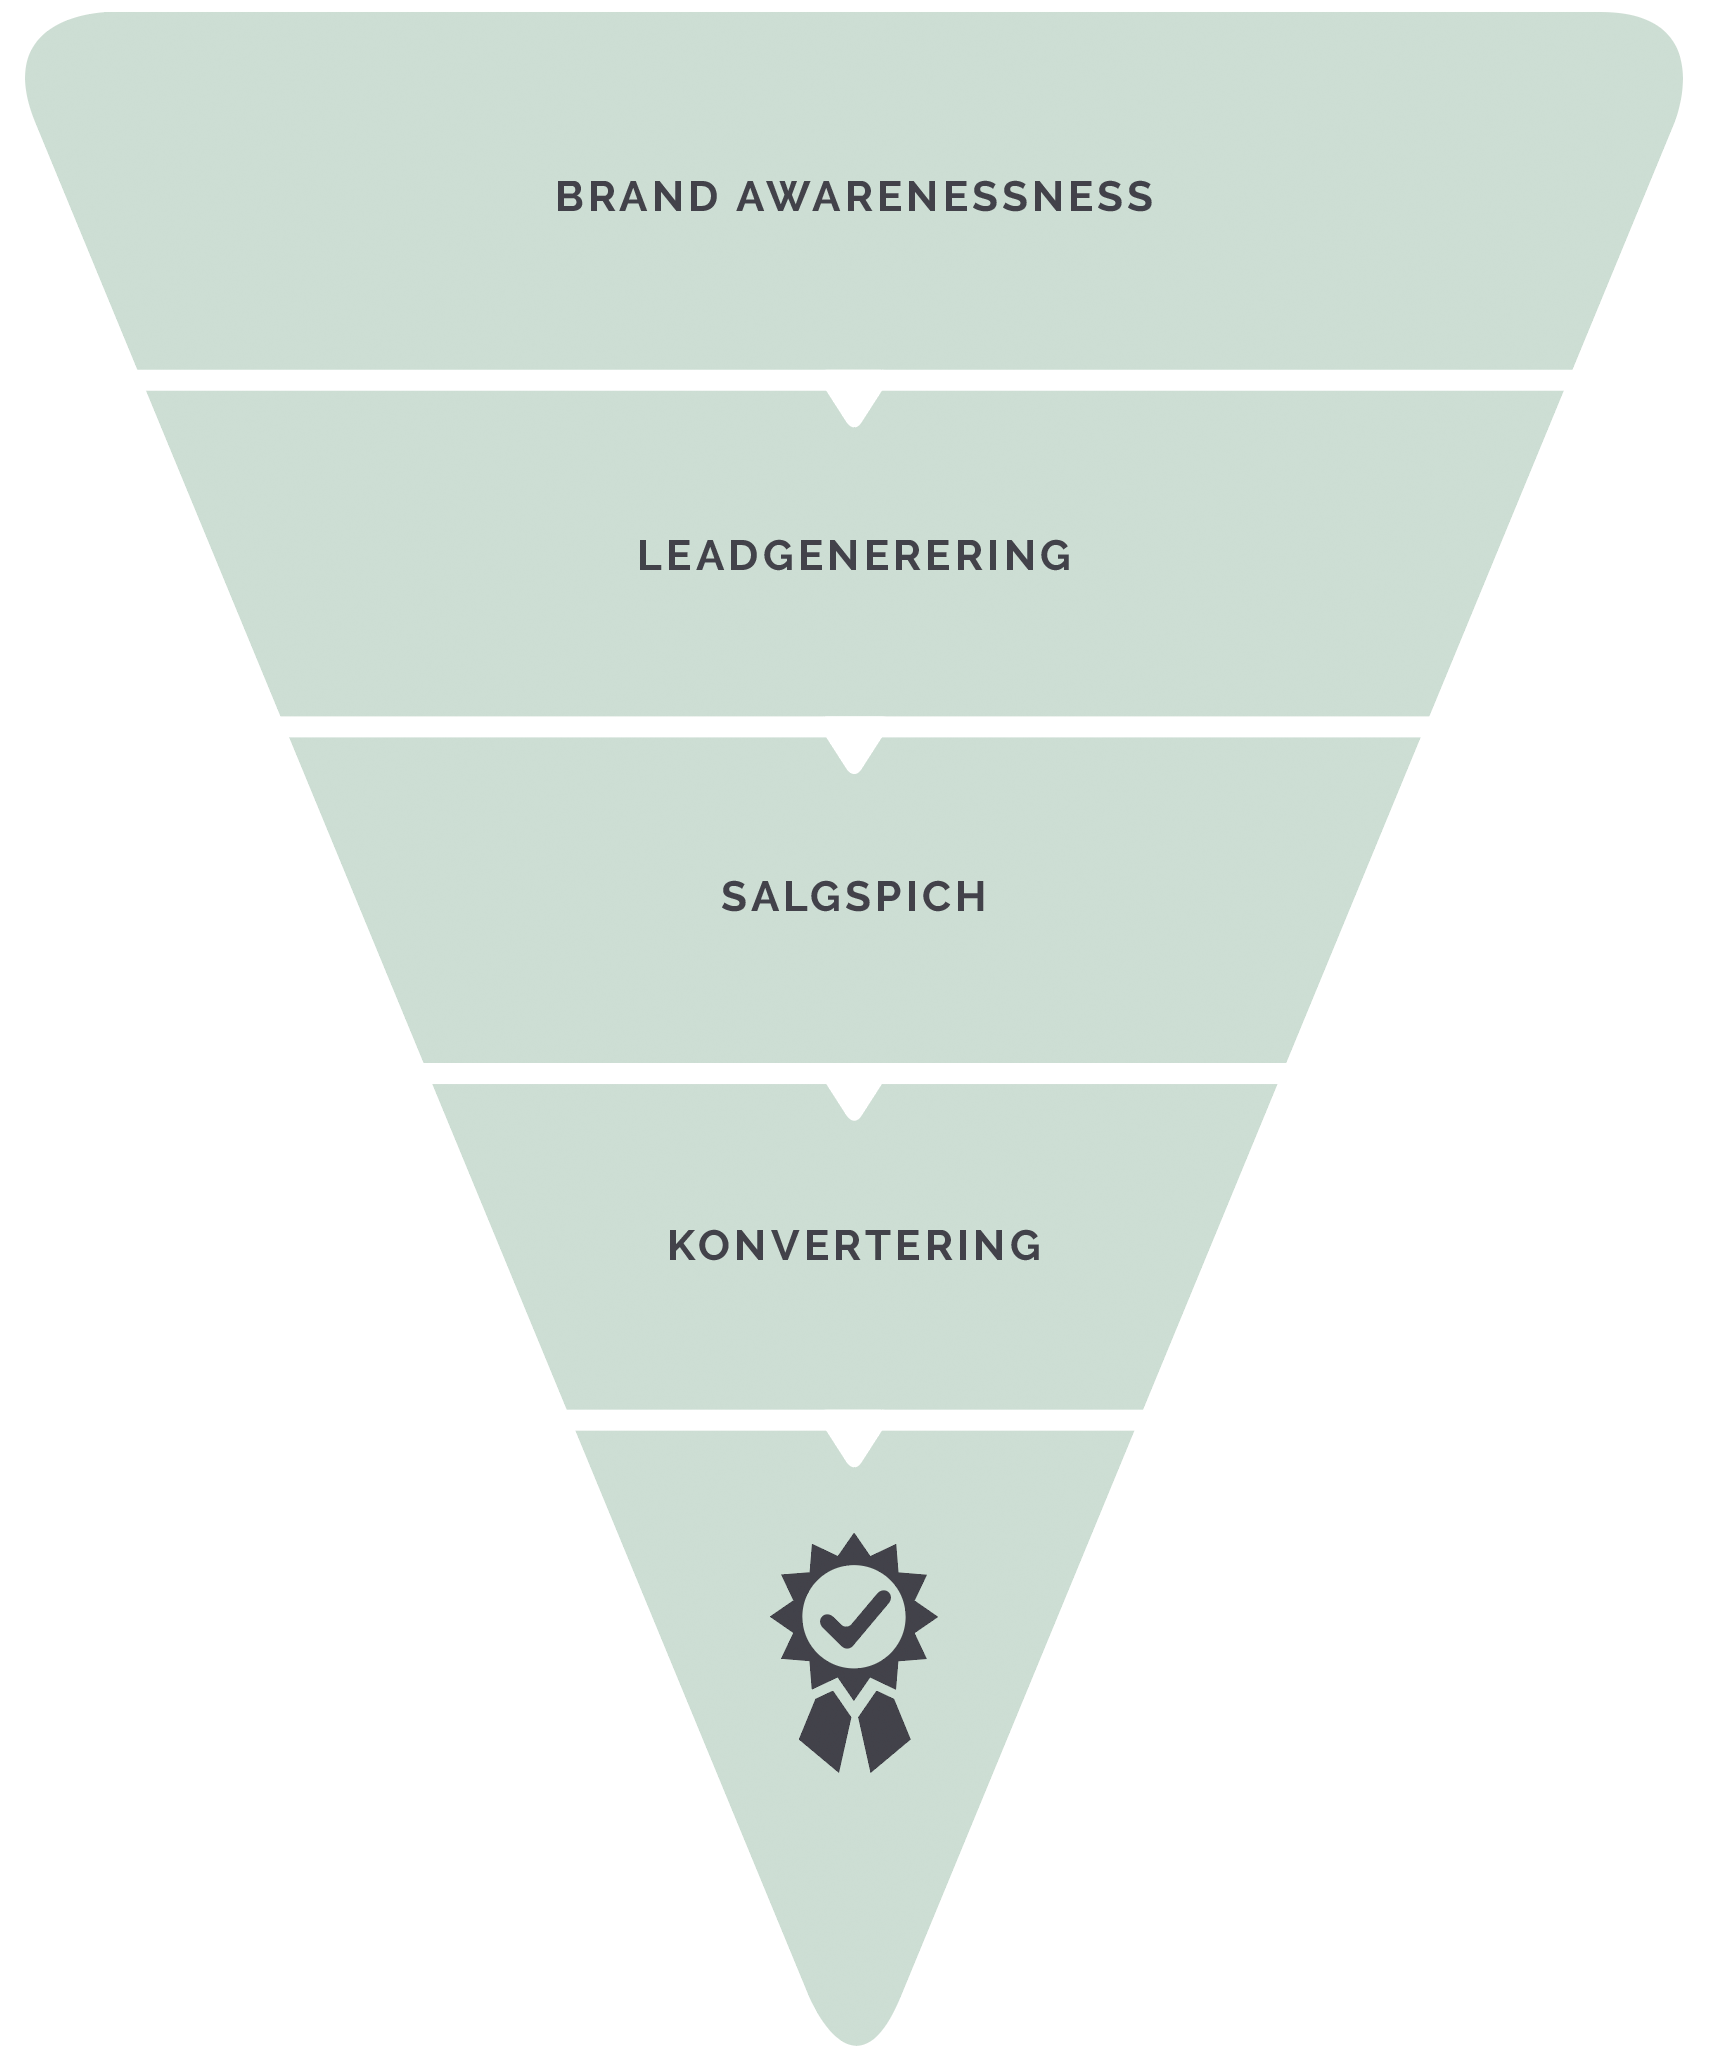 salesfunnel-model-brand-awareness-leadgenerering-salgspitch-konvetering